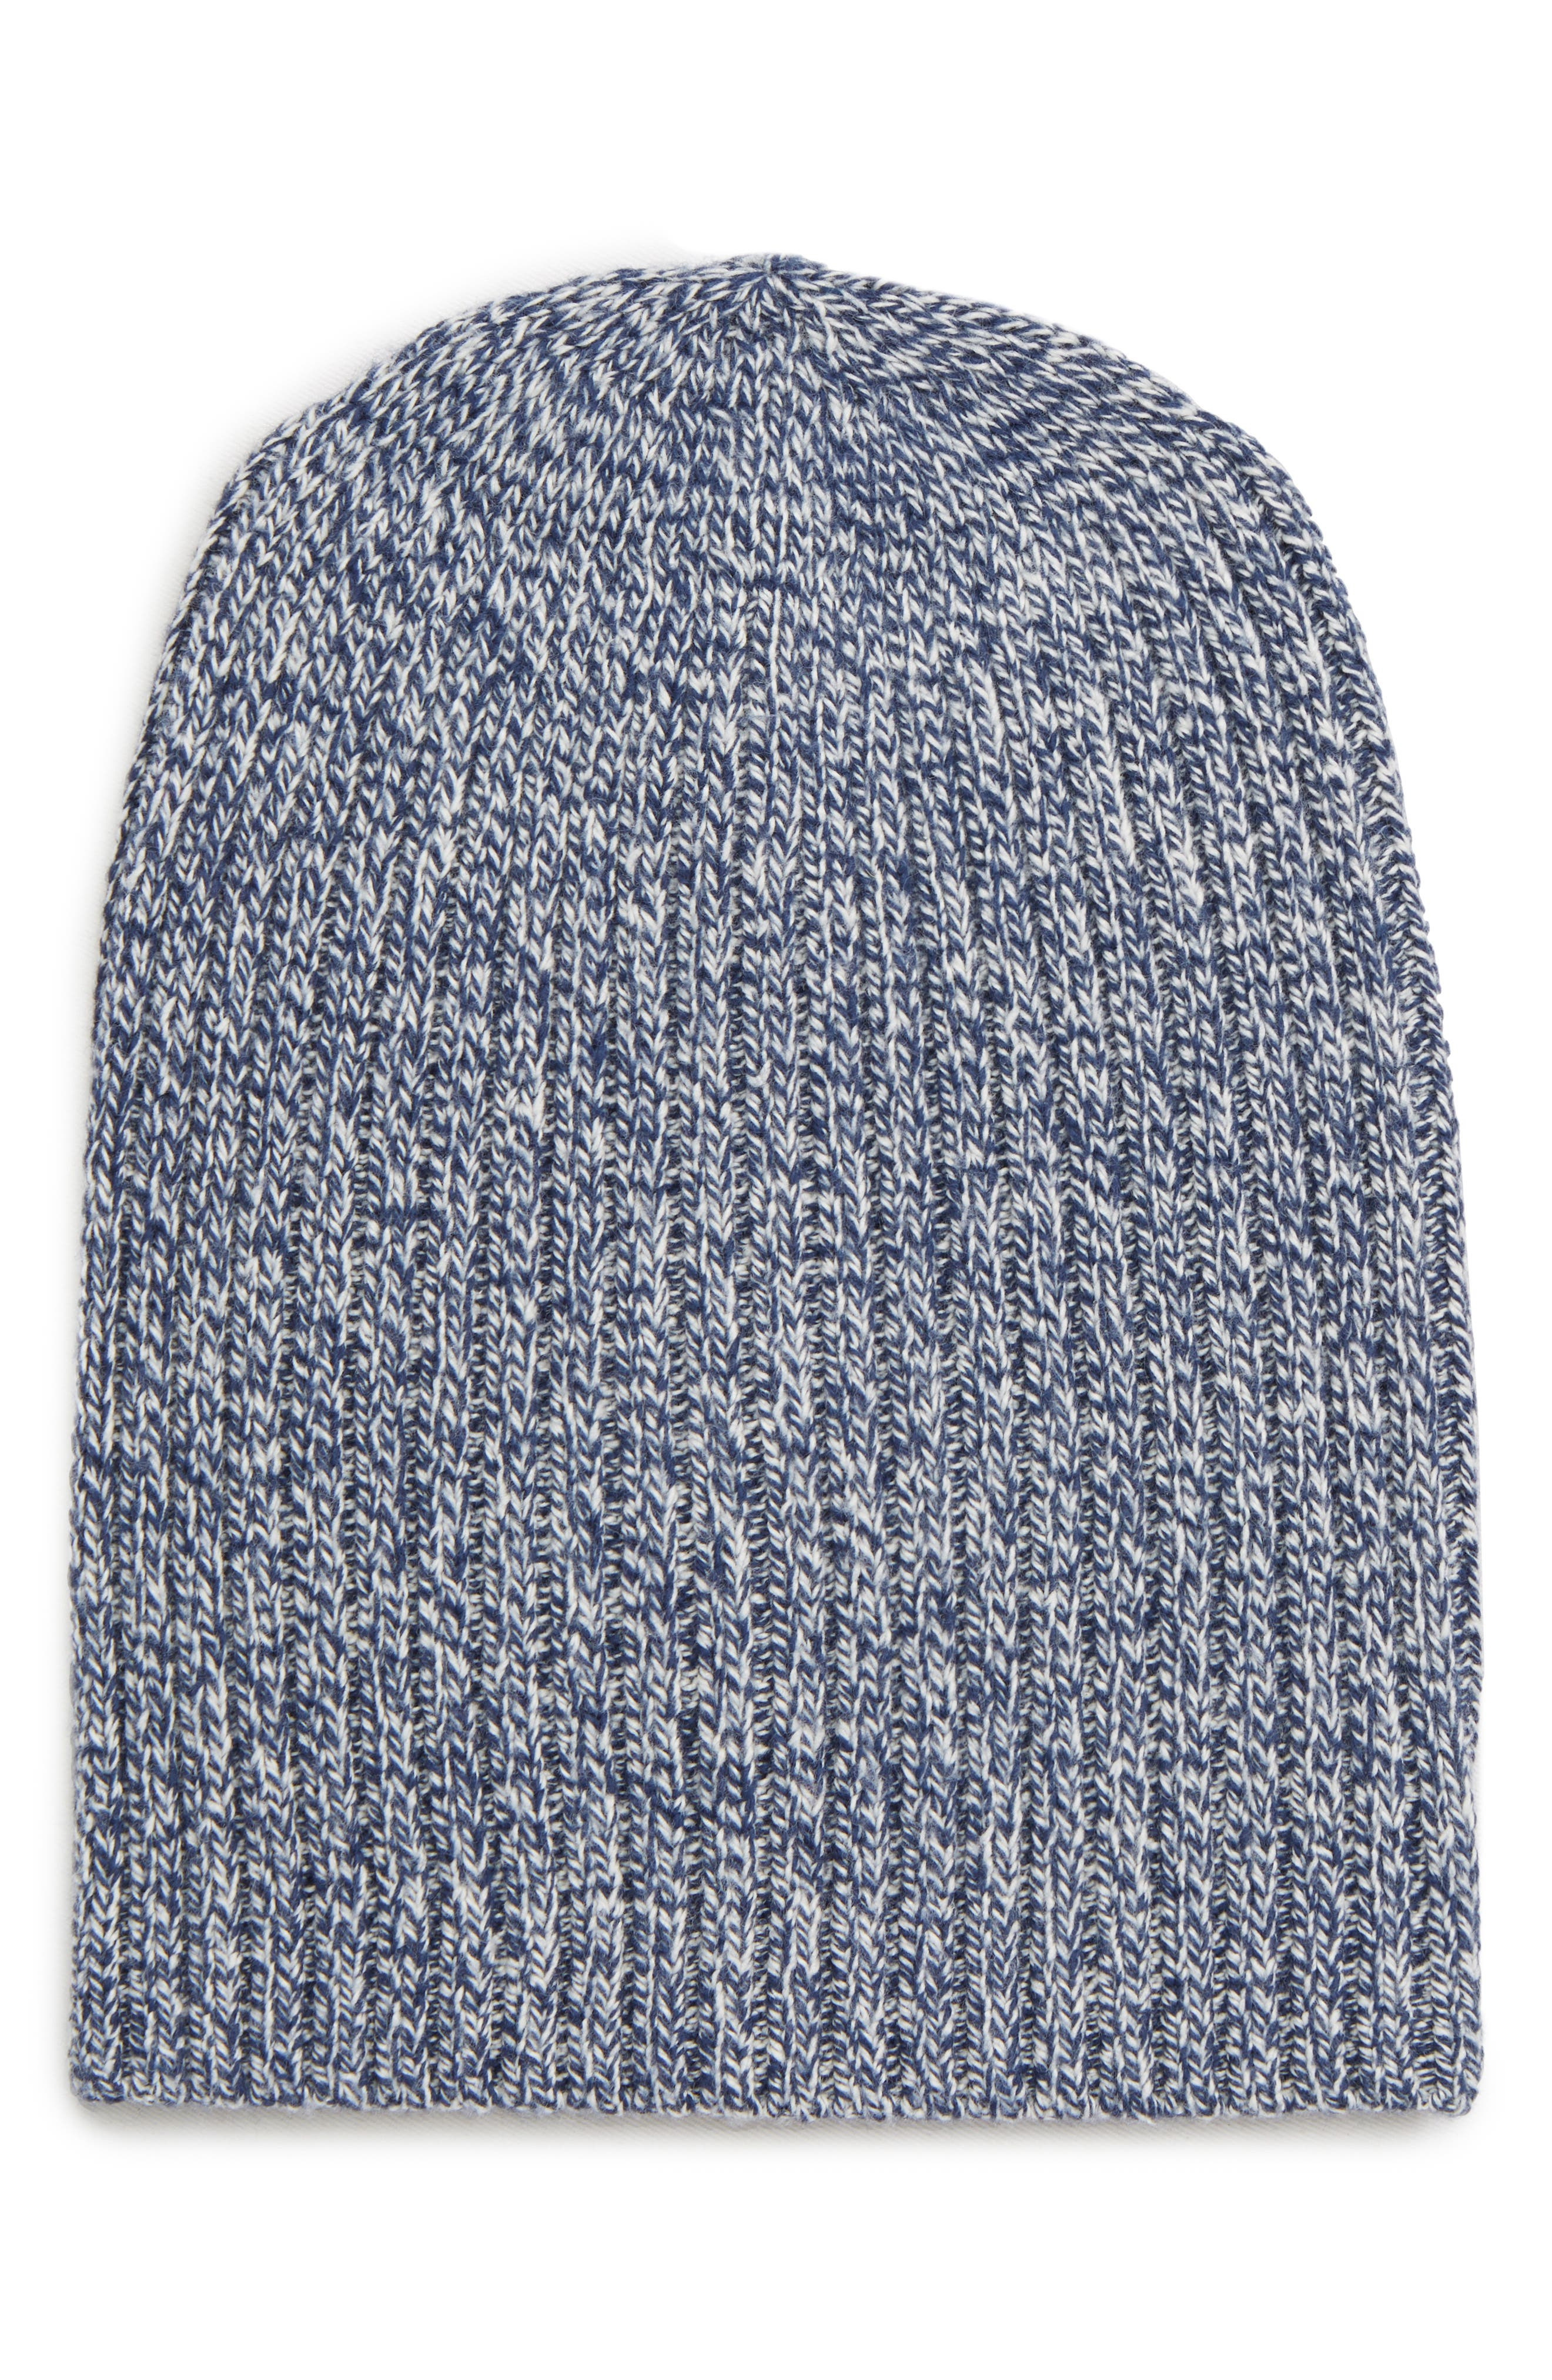 Perfect Textured Rib Beanie,                         Main,                         color, MOONLESS NIGHT MULTI